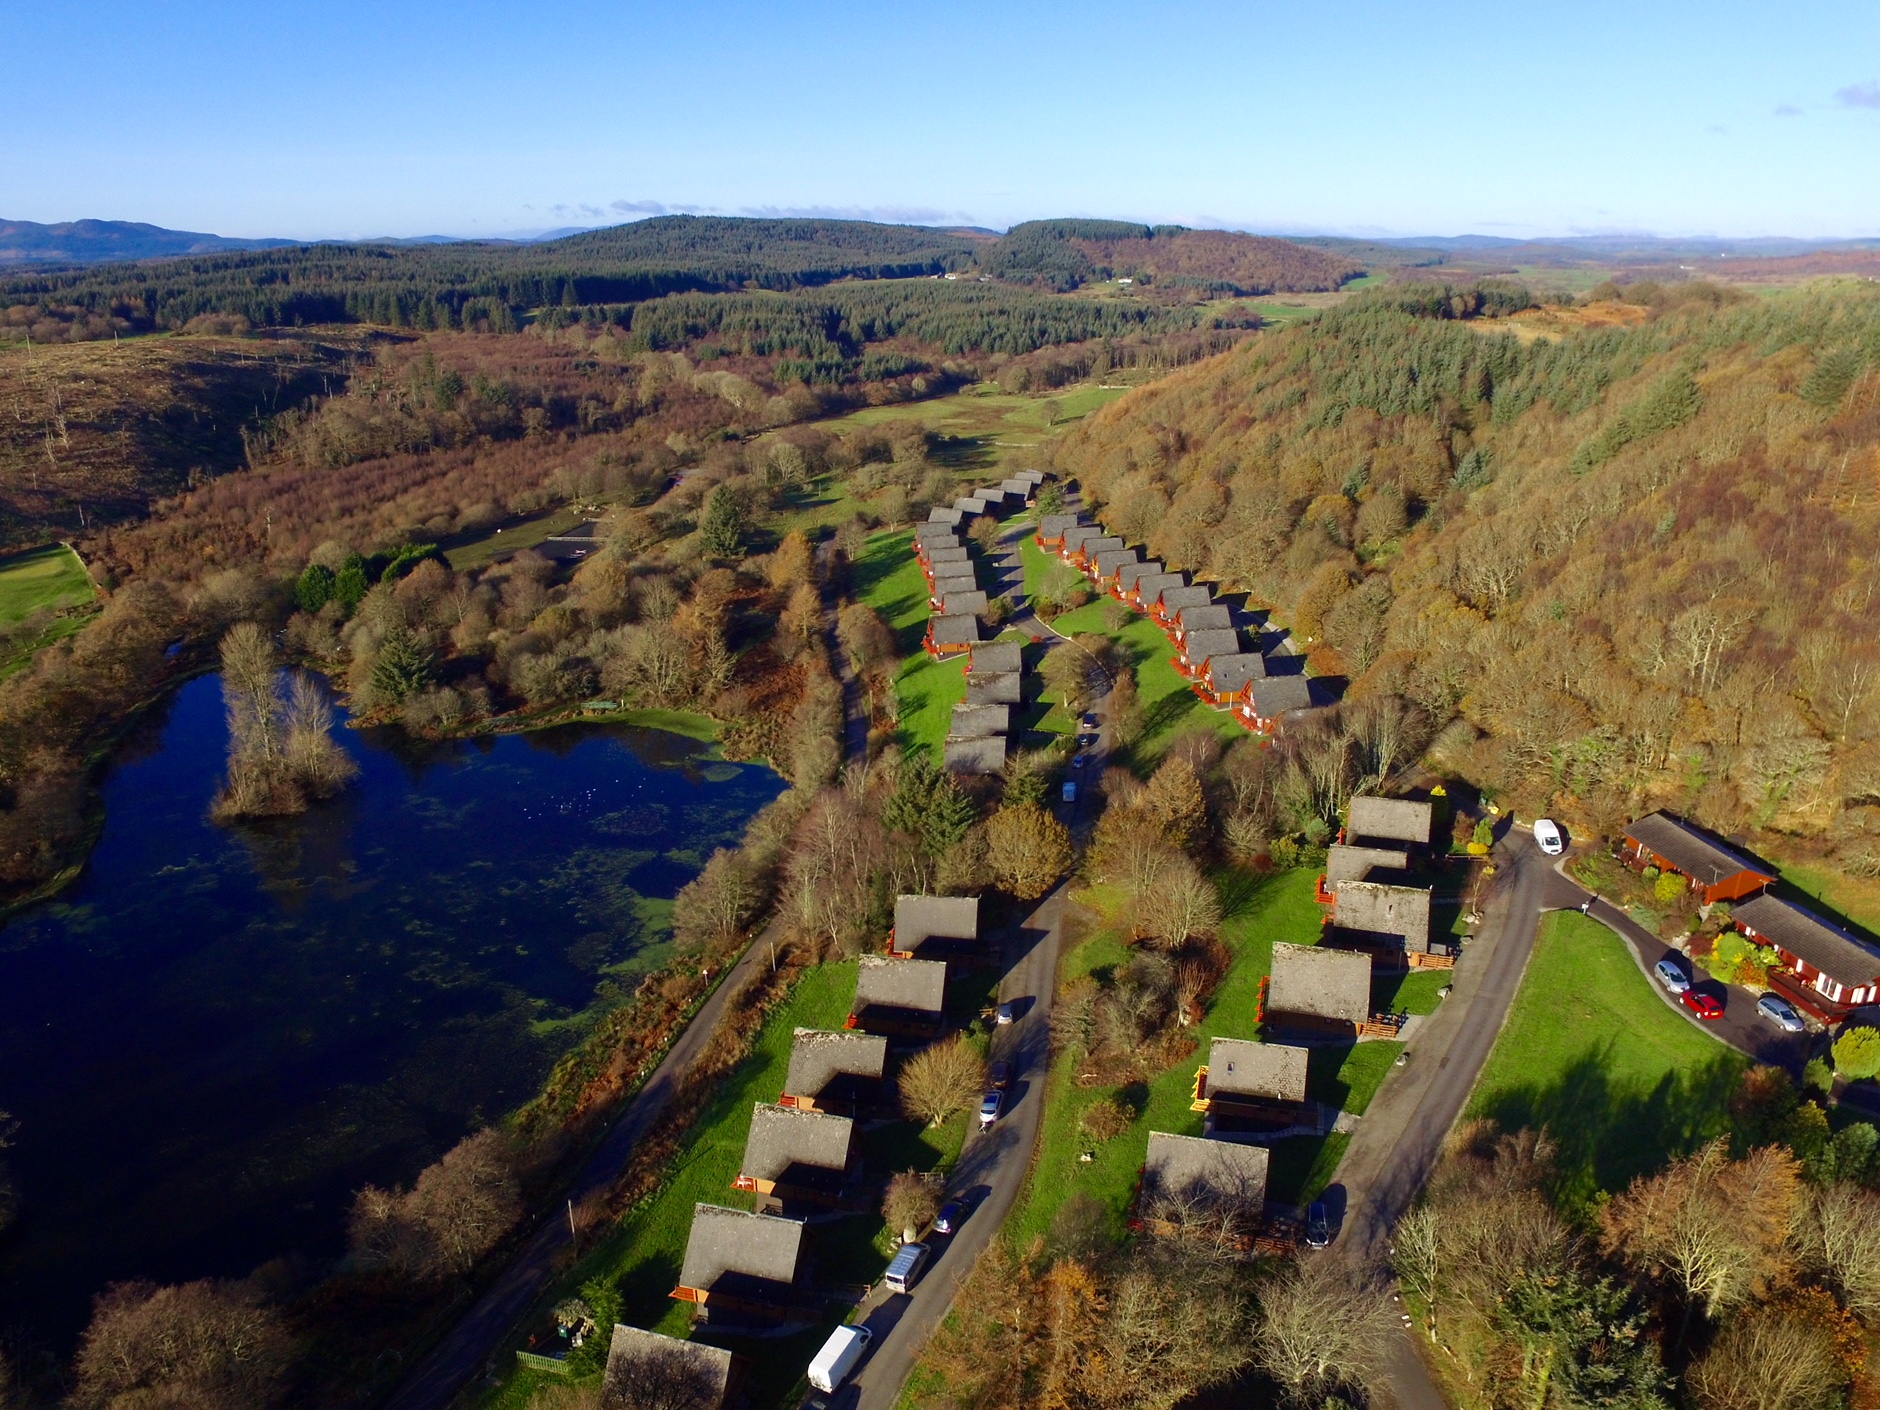 Aerial View of Barend Holiday Lodges